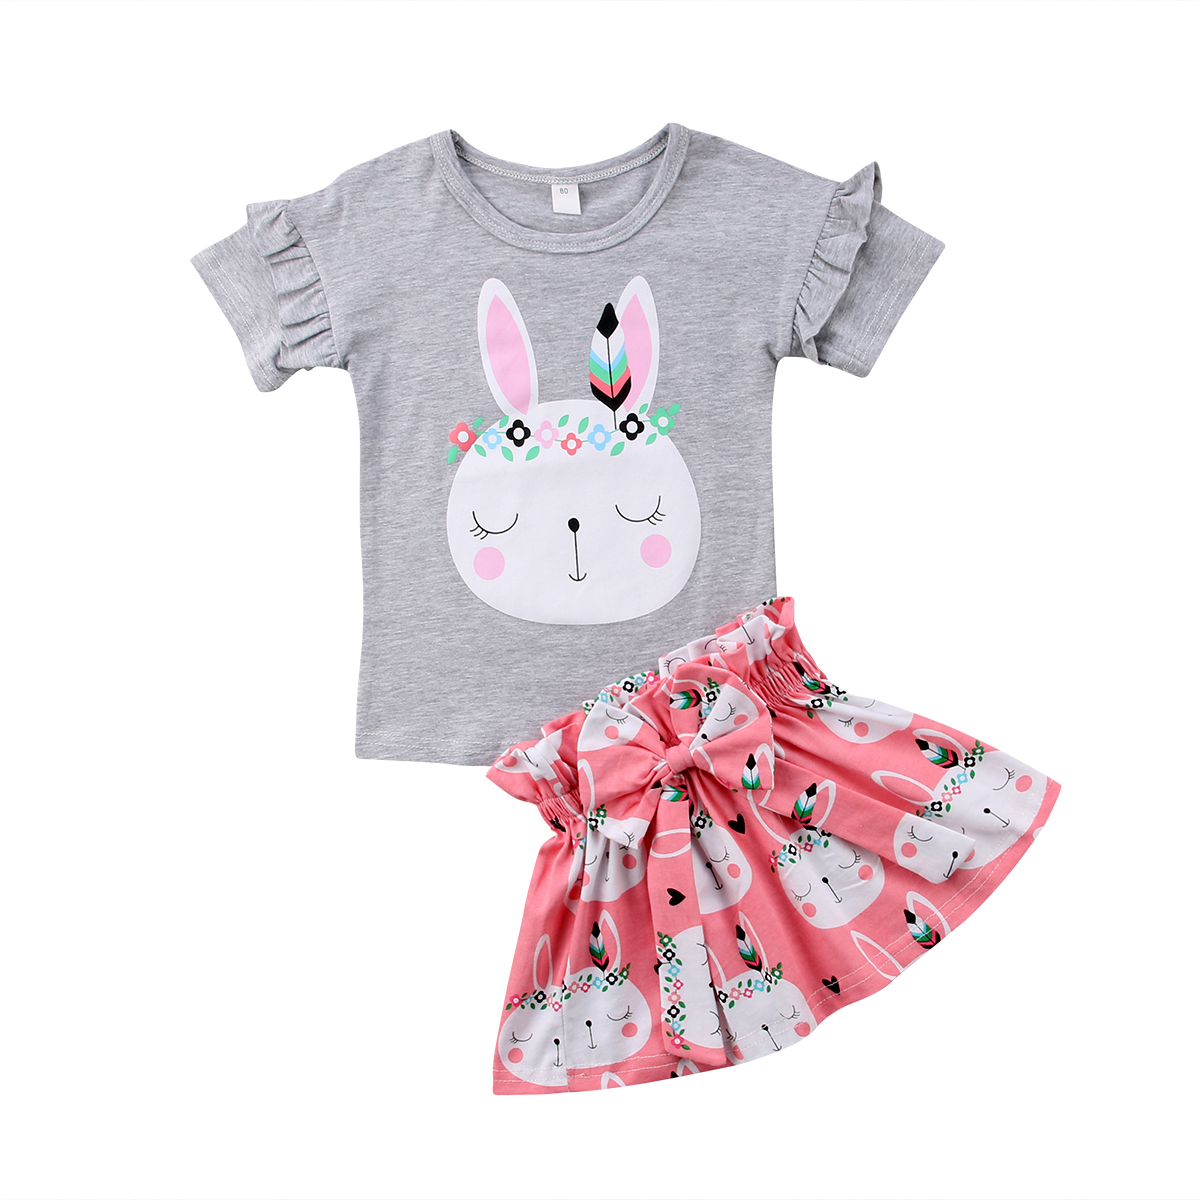 Toddler Kids Baby Girl Autumn Rabbit Bowknot Floral Princess Mini Dress Clothes